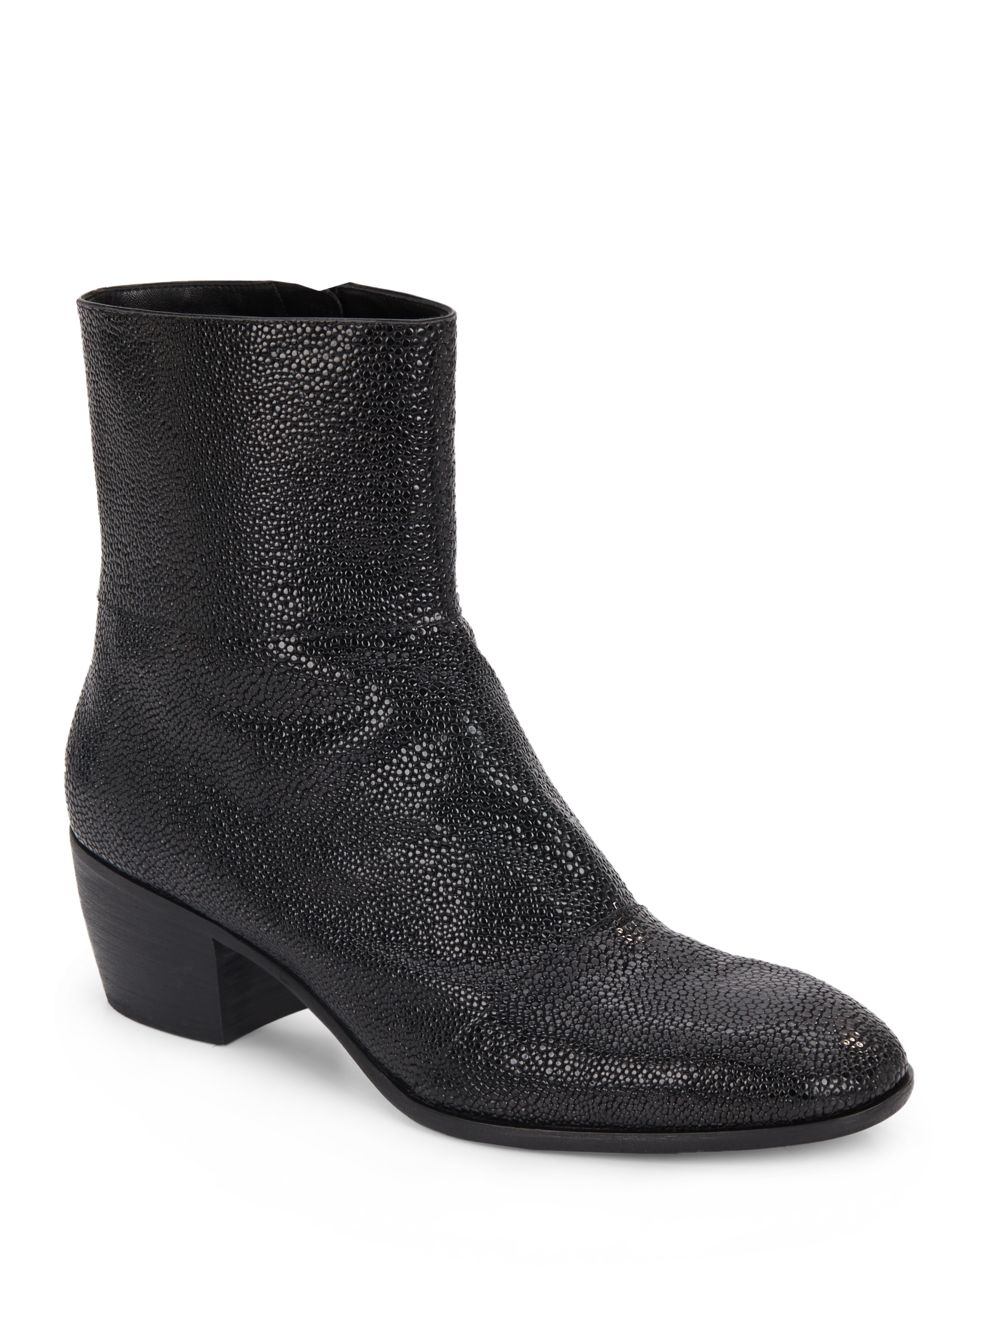 giuseppe zanotti embossed leather boots in black for